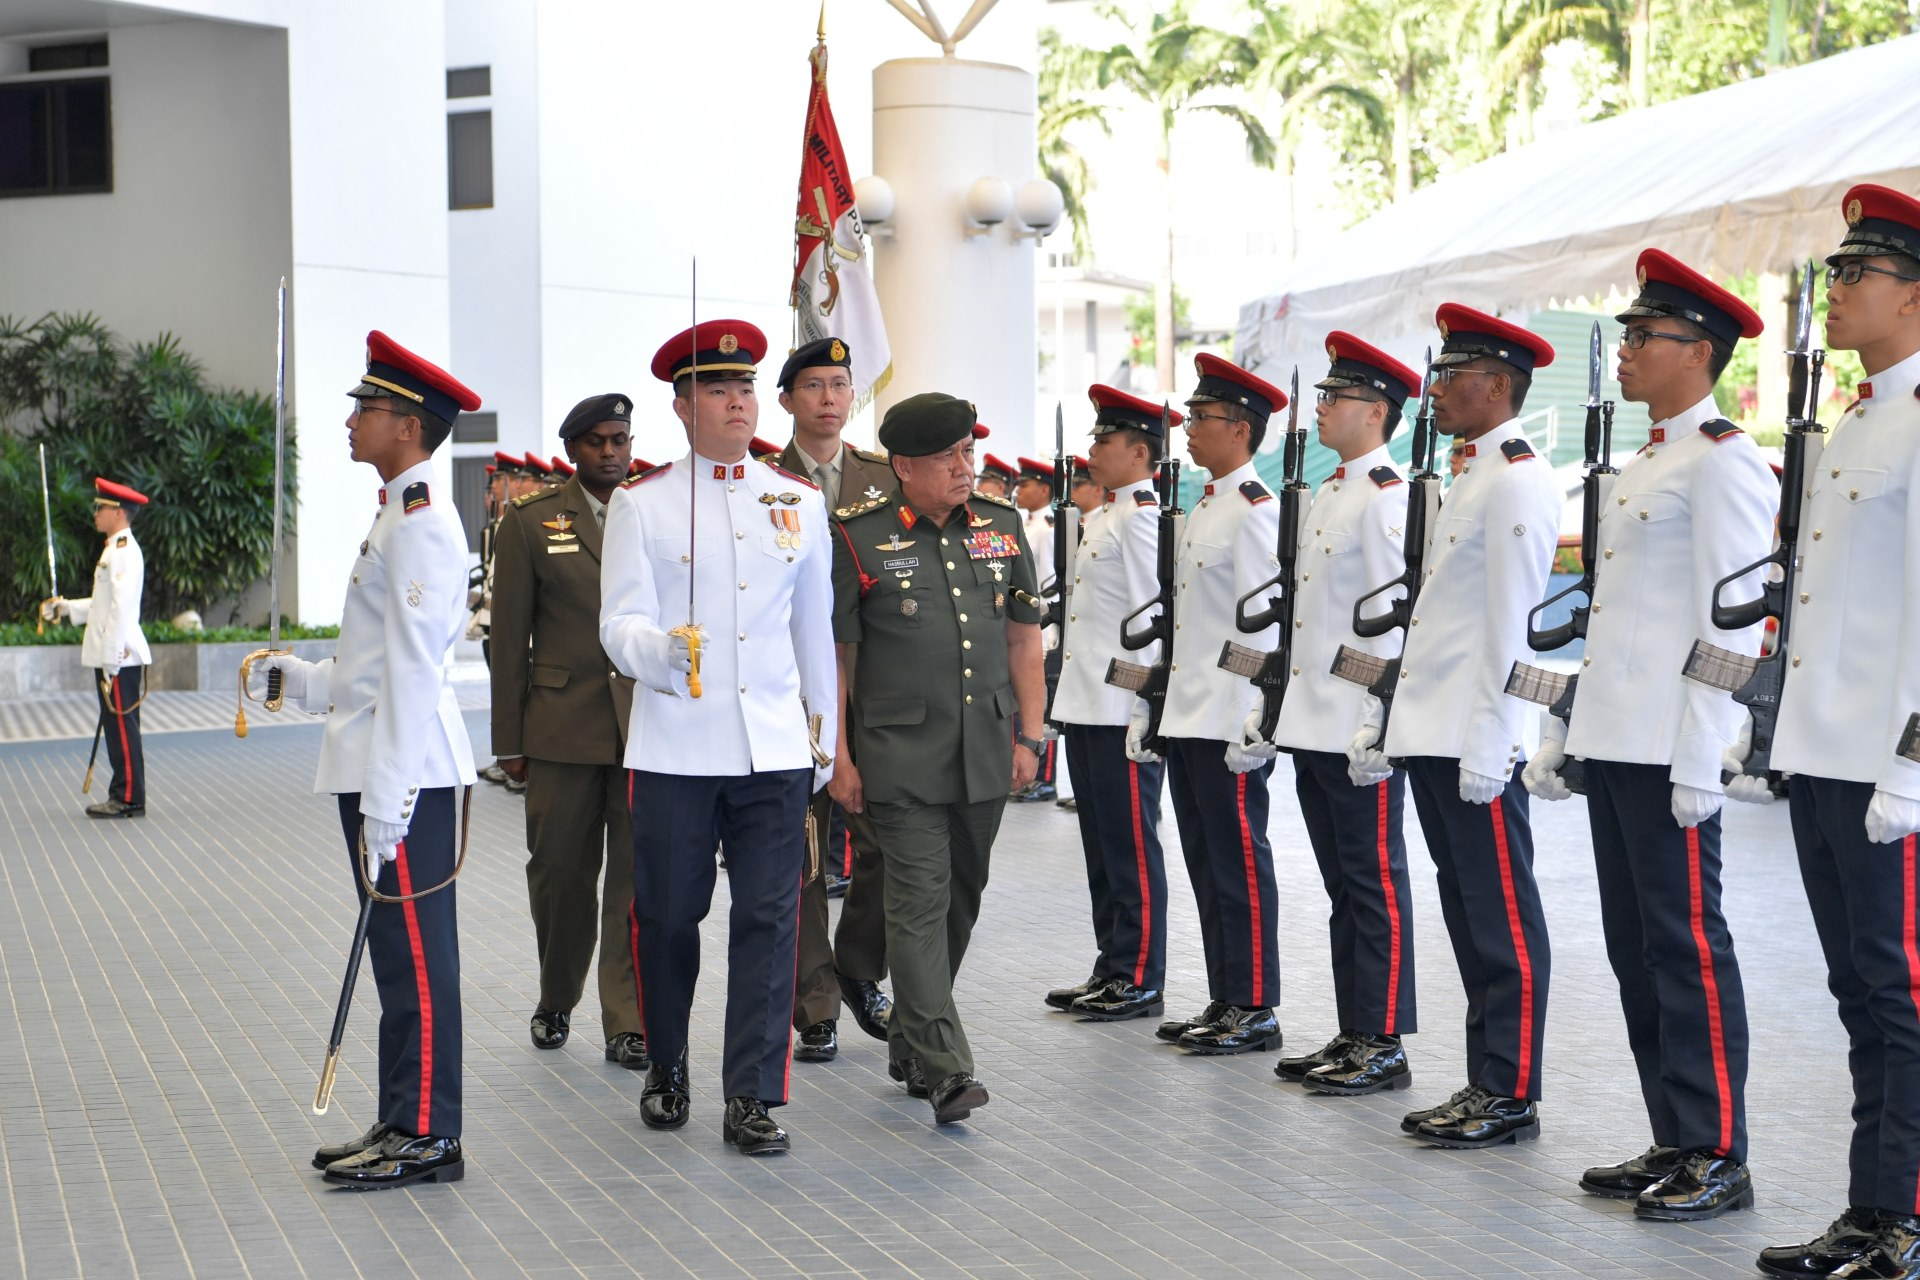 GEN Hasbullah reviewing a Guard of Honour at MINDEF earlier today.